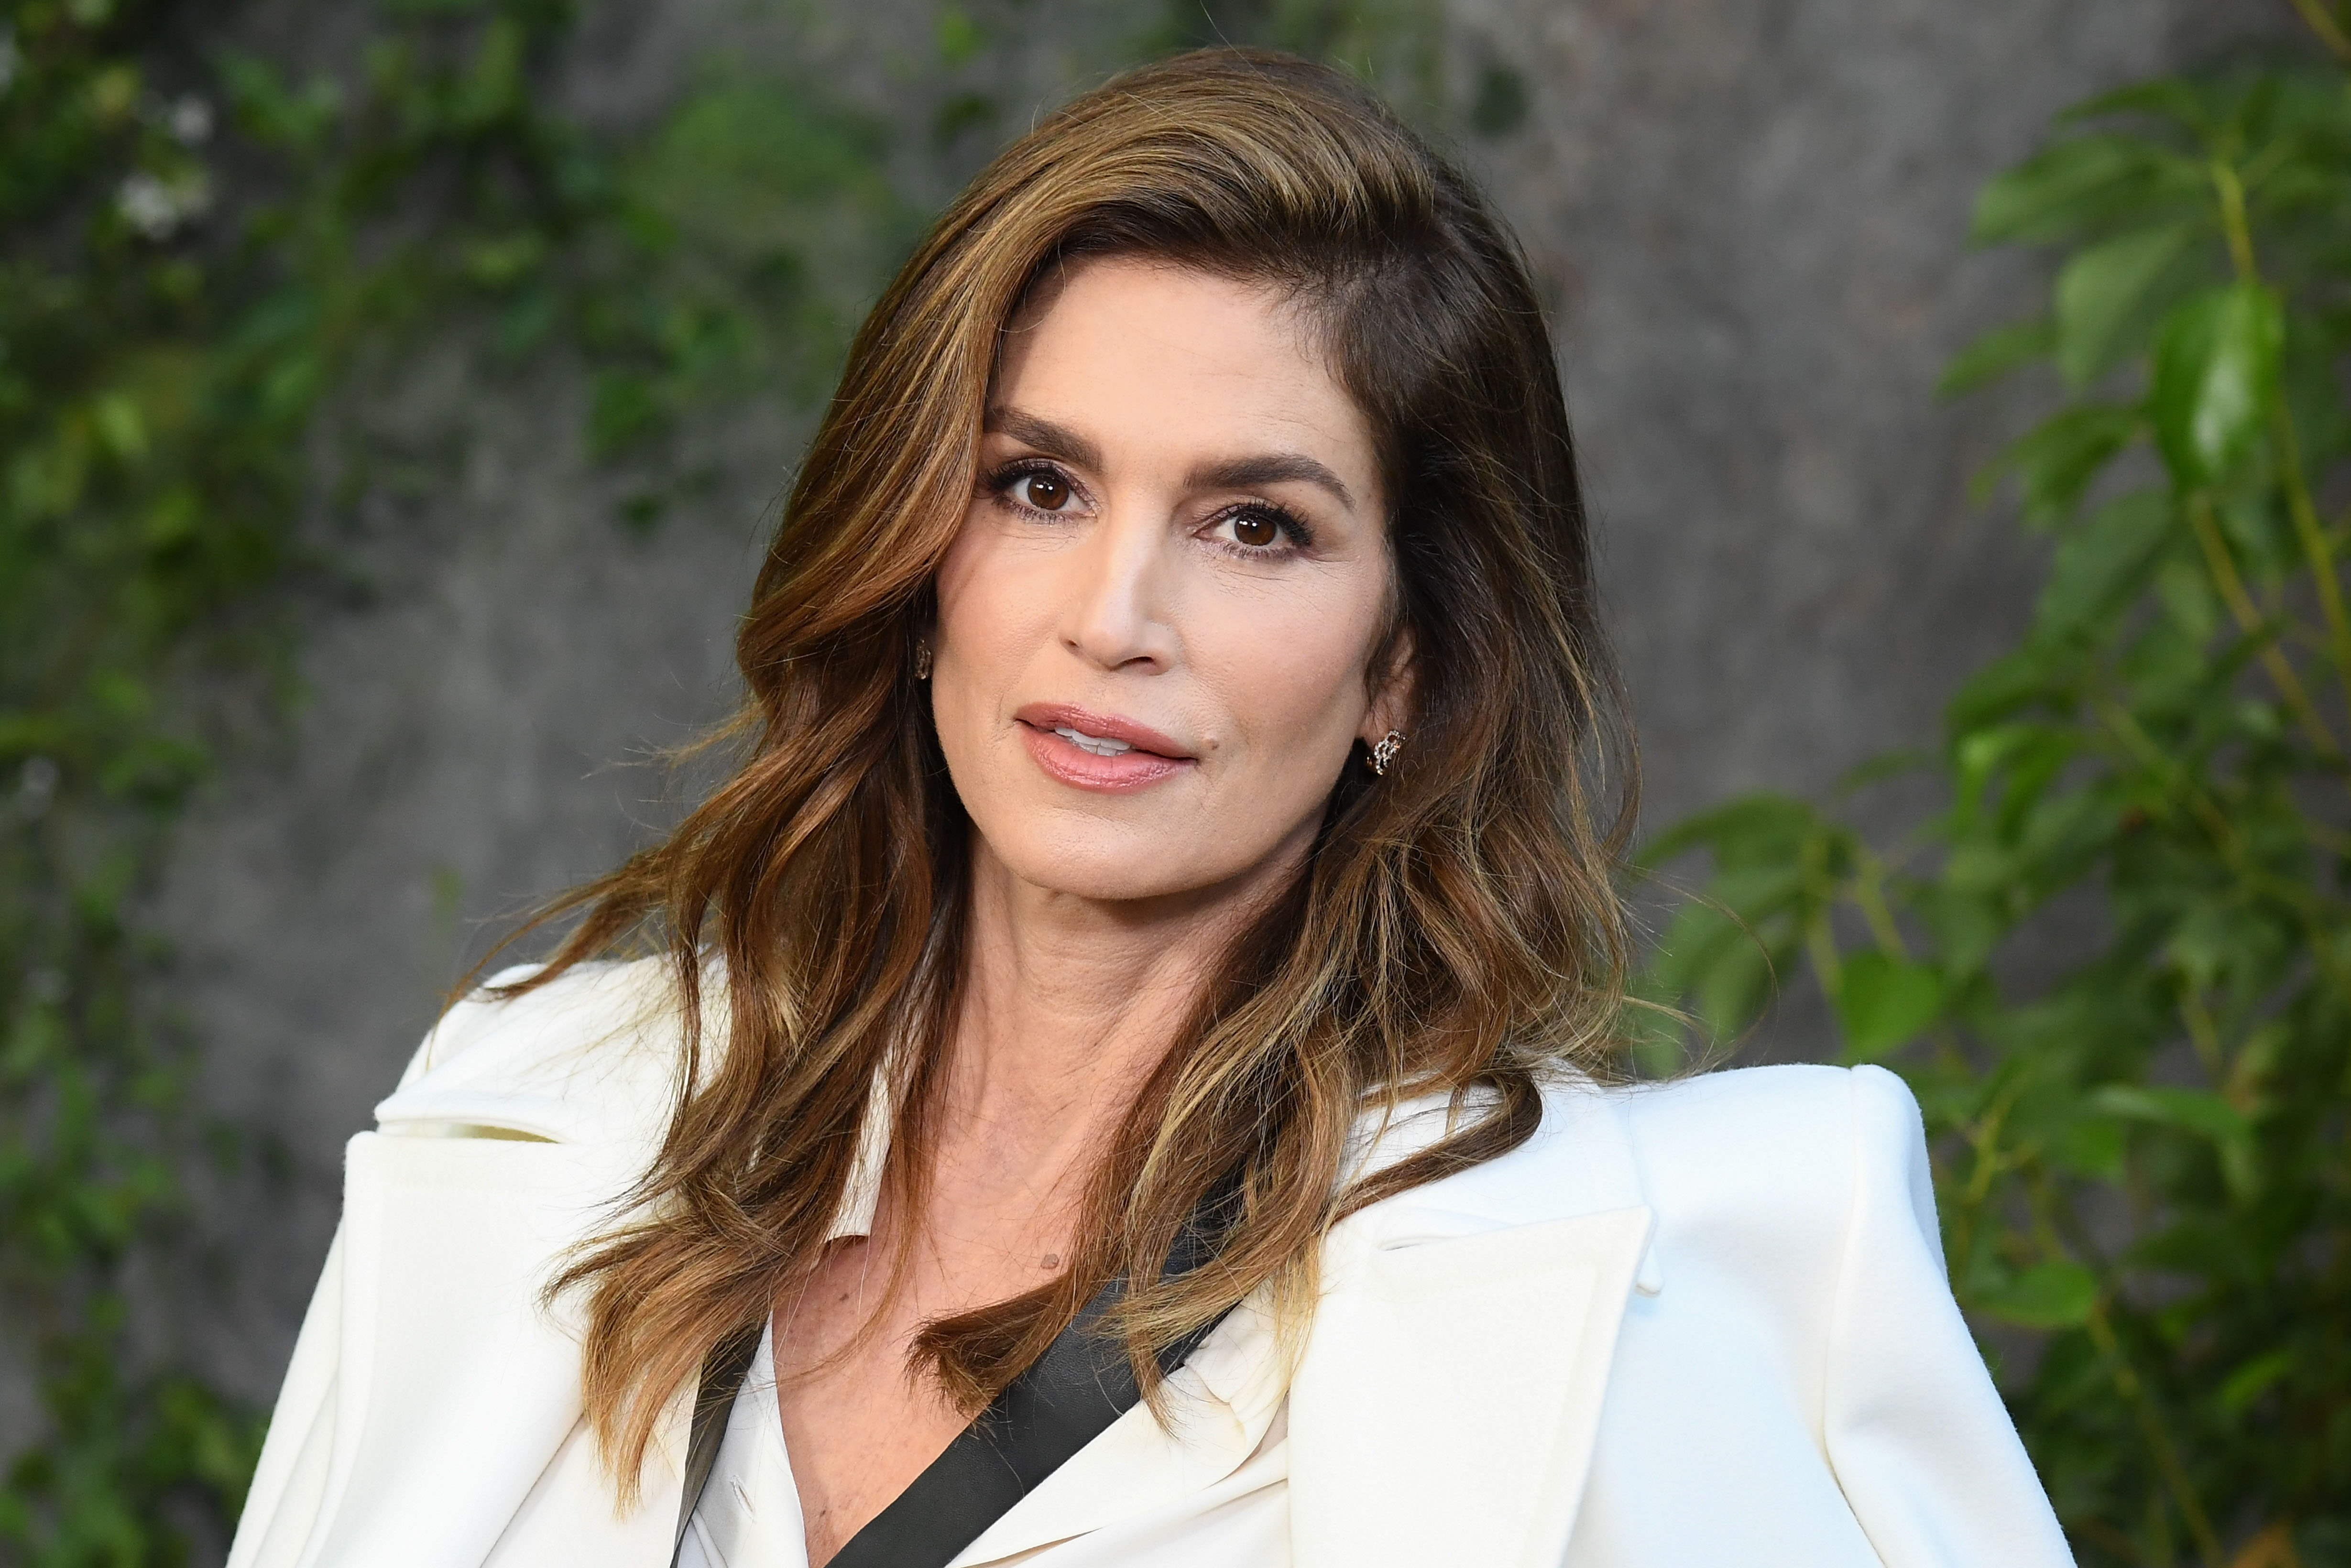 Cindy Crawford attends the Chanel show as part of the Paris Fashion Week Womenswear Spring/Summer 2018 at  on October 3, 2017 in Paris, France.